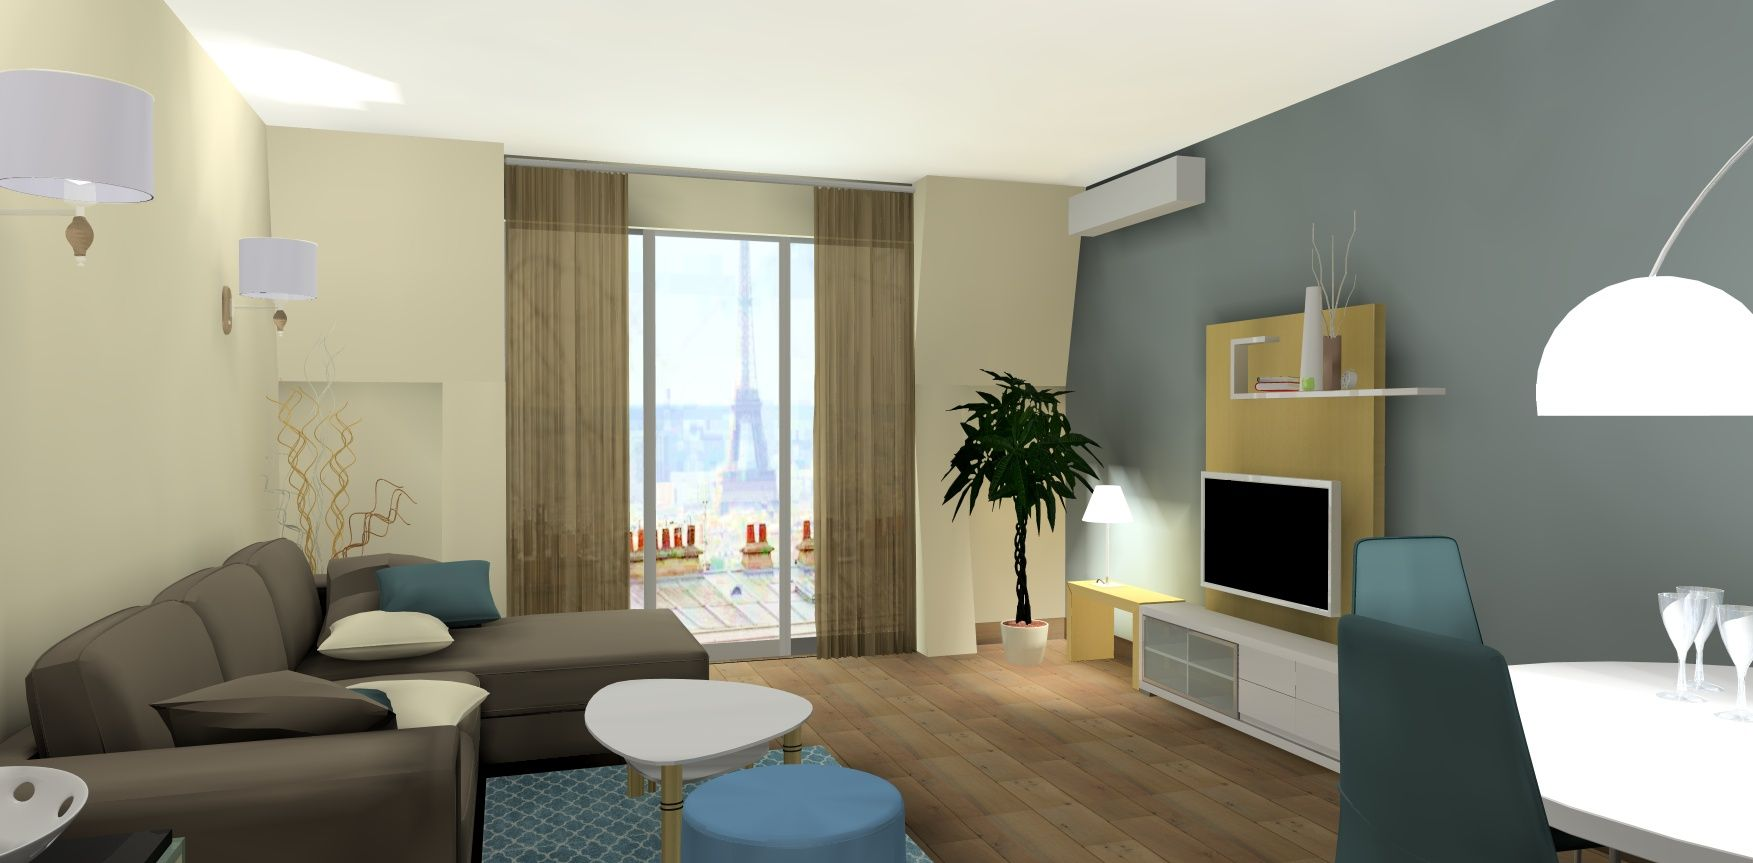 vue 3d salon lin et bleu appartement plan 3d salon simulation 3d s jour marion tournadre. Black Bedroom Furniture Sets. Home Design Ideas